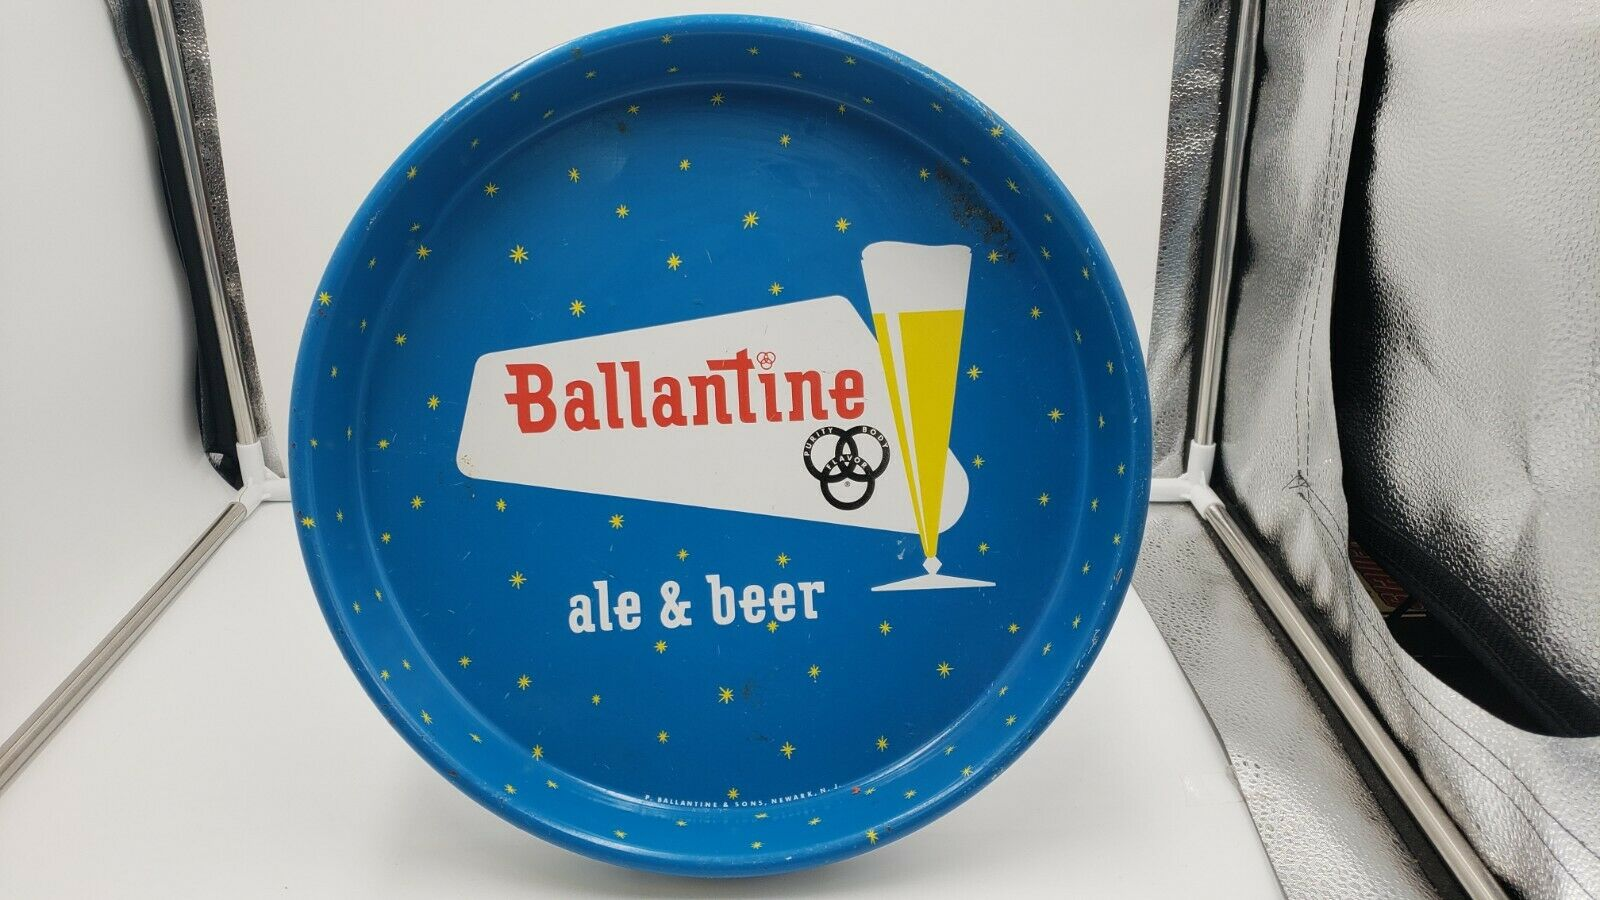 Ballantine Ale & Beer Metal Bar Serving Tray Newark, NJ Vintage Blue w/ Stars